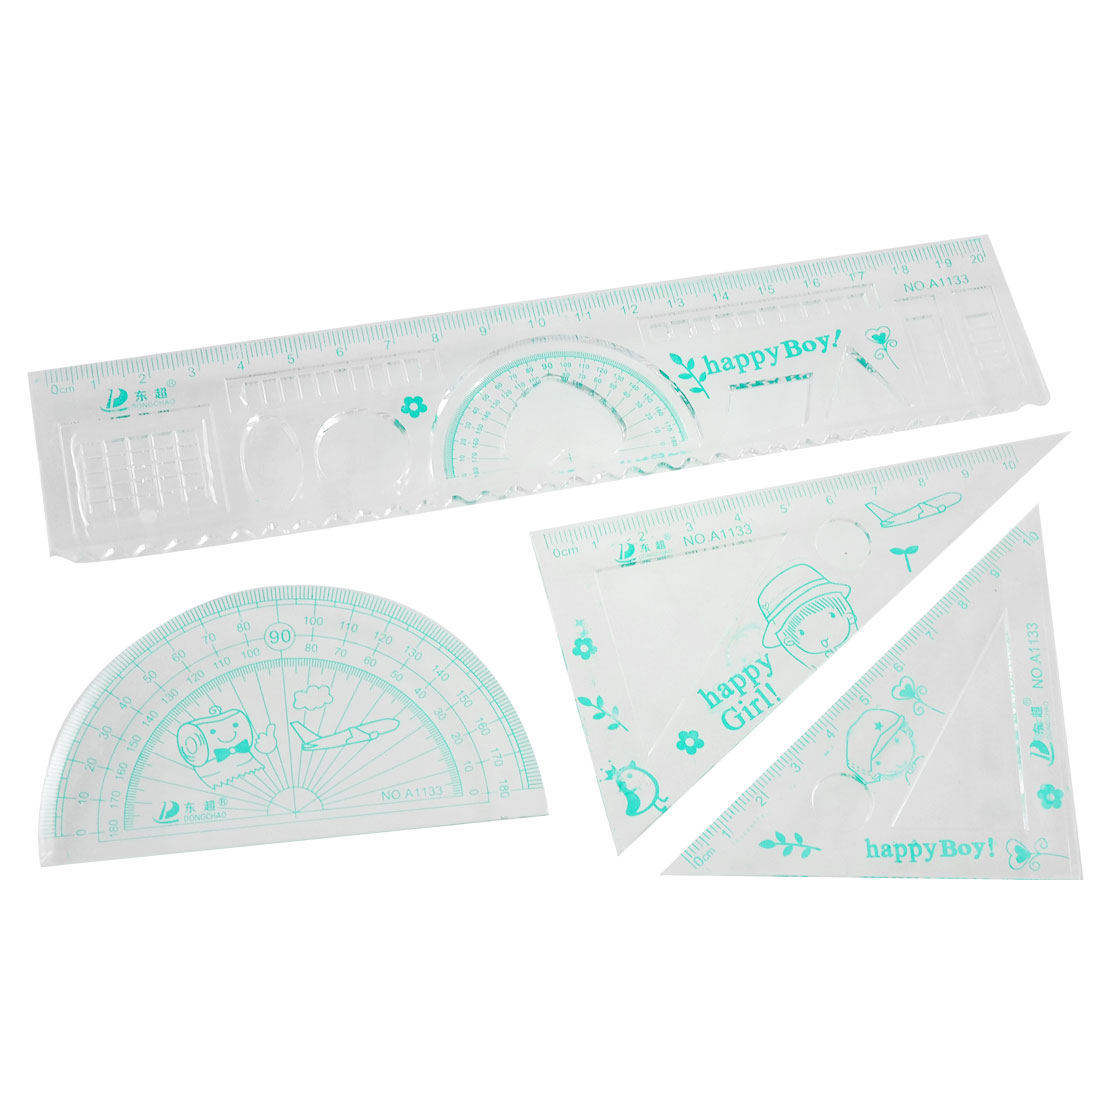 4 Pcs Kids Words Flower Printed Clear Green Plastic Student Ruler Set